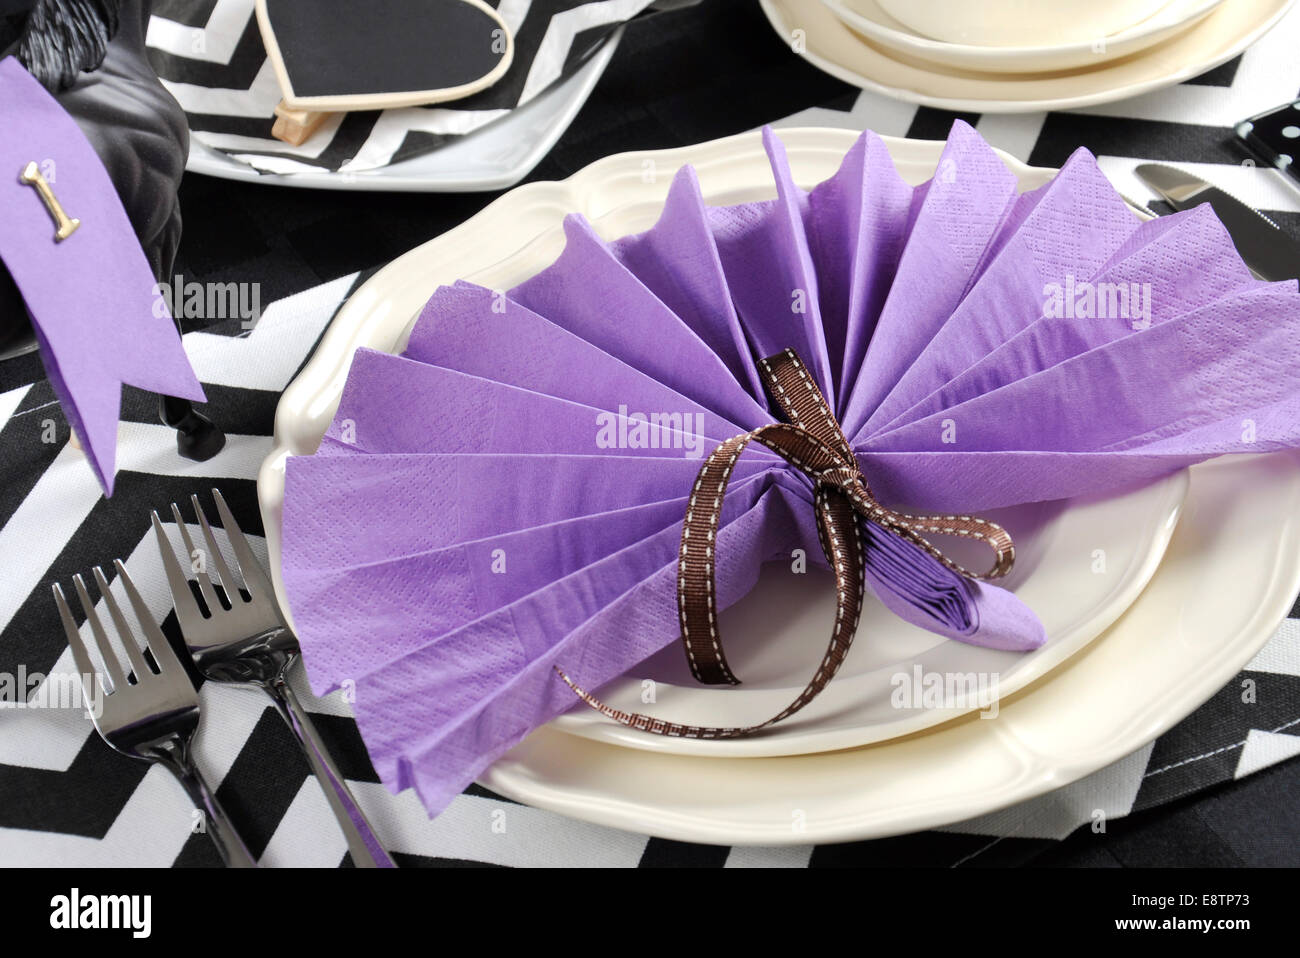 Black and white chevron with purple theme party luncheon table place setting for melbourne cup australian public holiday